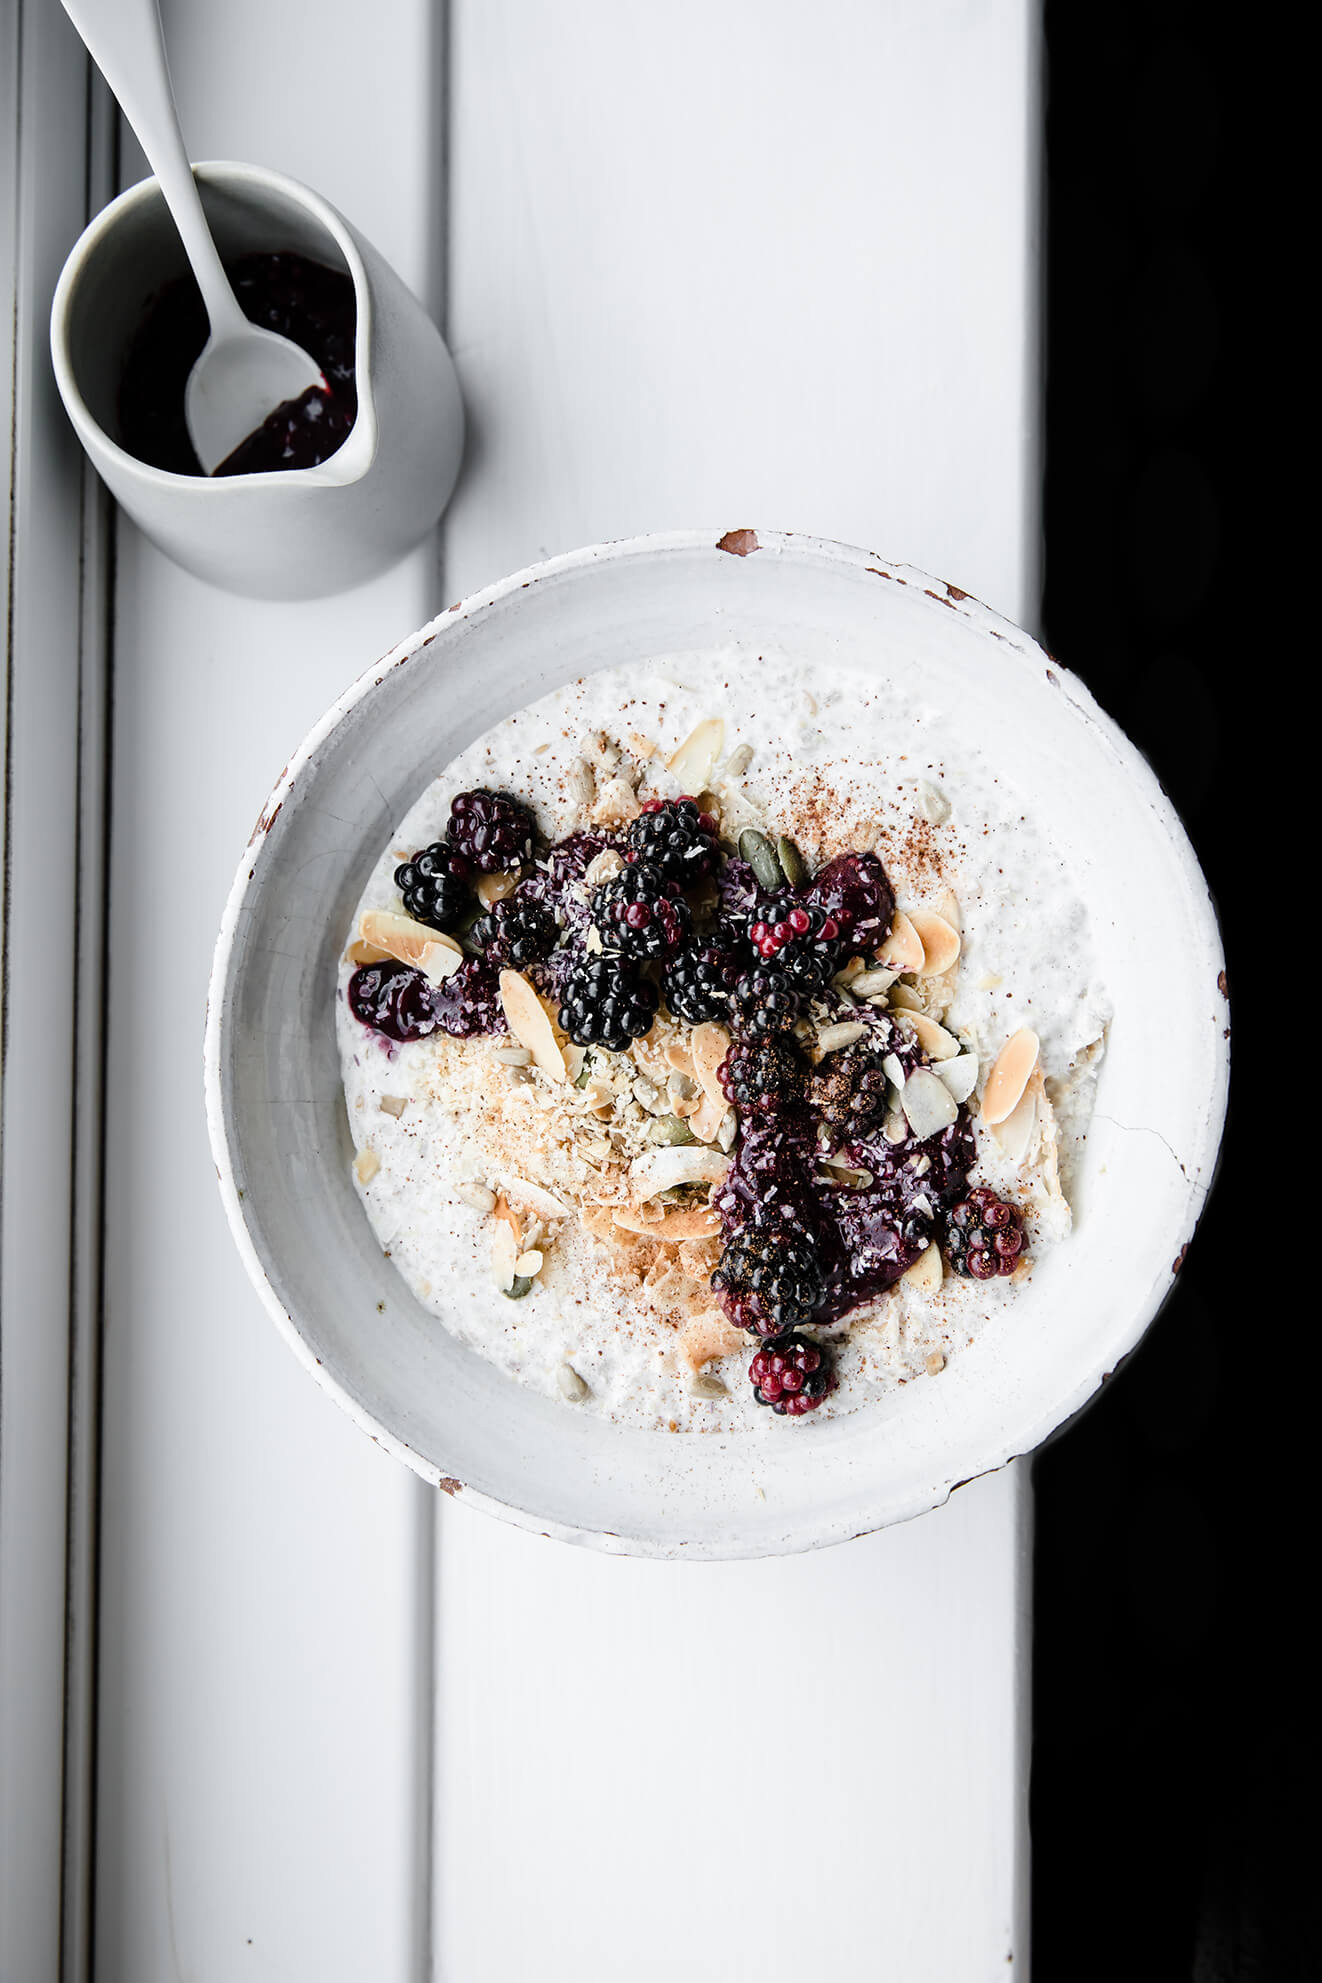 Noatmeal, grain free oats, food photography, Modern Food Stories, Keto Oatmeal